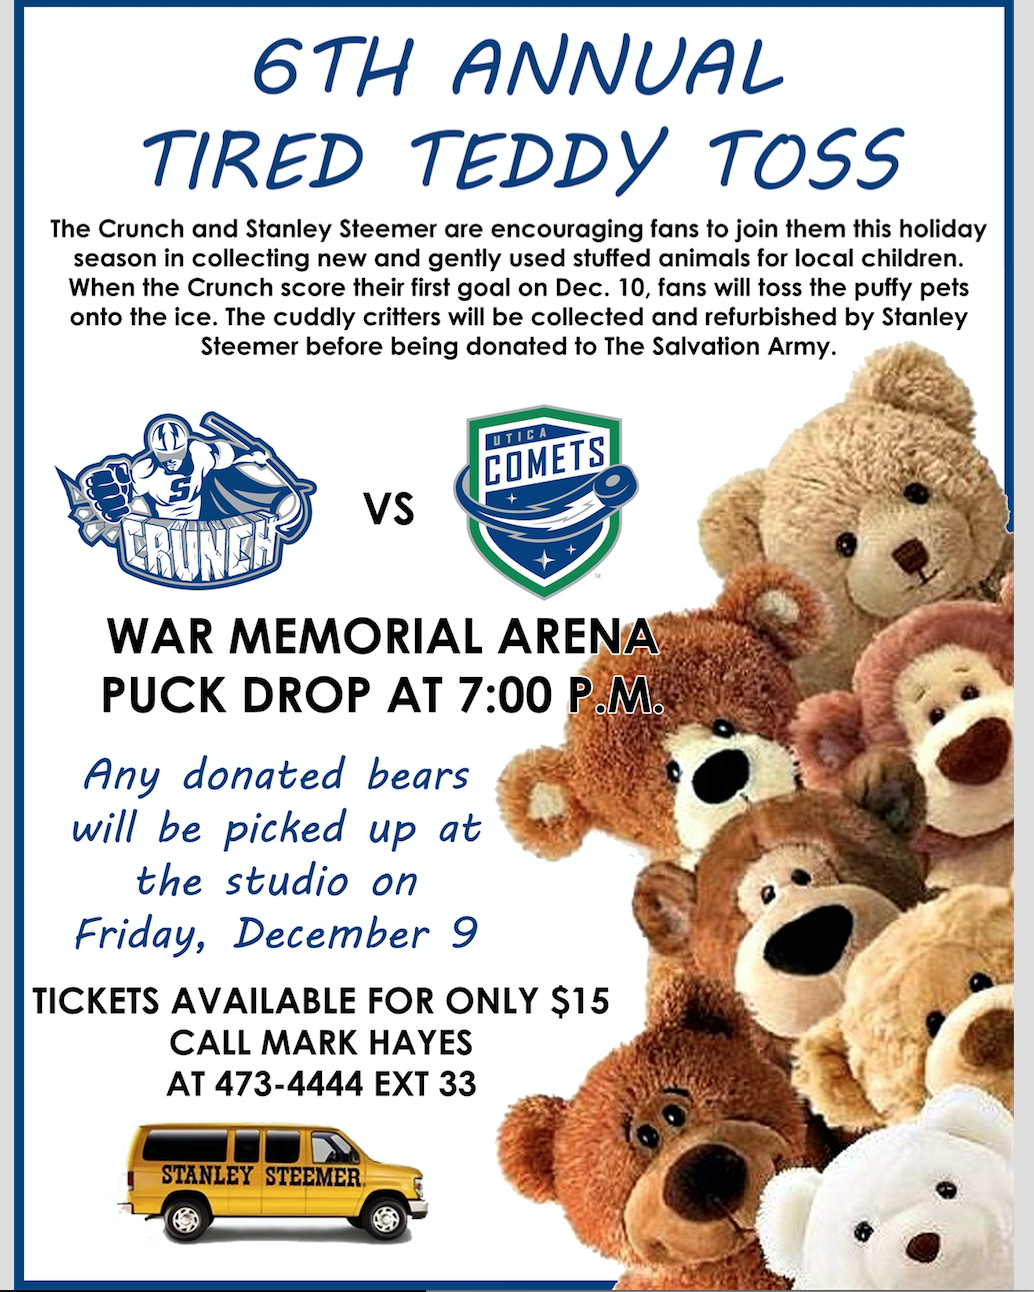 This coming week we will be collecting gently used Teddy Bears or other plush toys to donate to this wonderful cause!! Please bring any you would like to donate to the studio this week! Thanks to everyone in advance for helping!!  #ADDCGivesBack